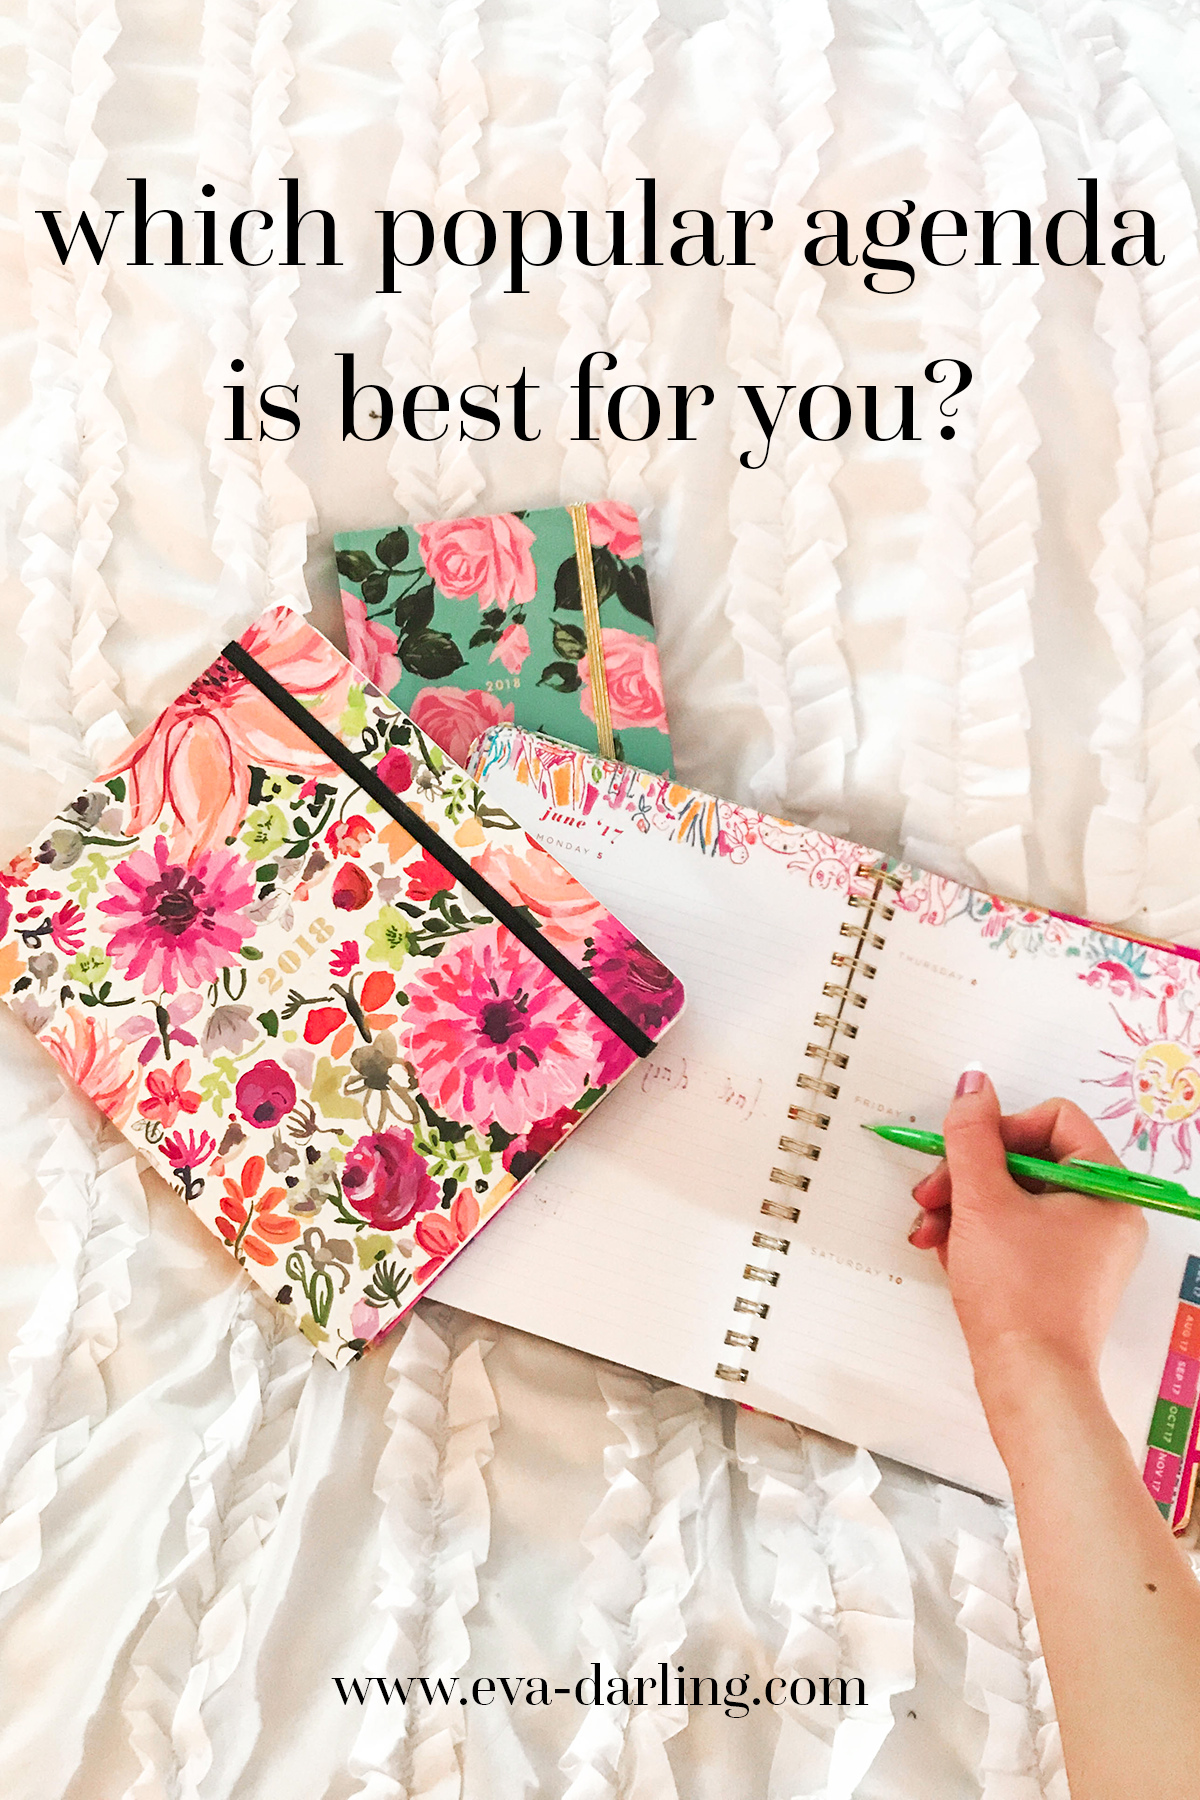 lilly pulitzer kate spade bando shop agenda planner organization elephant print pink roses on blue background with green leaves watercolor orange and magenta floral flower pattern on white duvet comforter with black text gold metallic detail elastic hardcover bound spiral covered